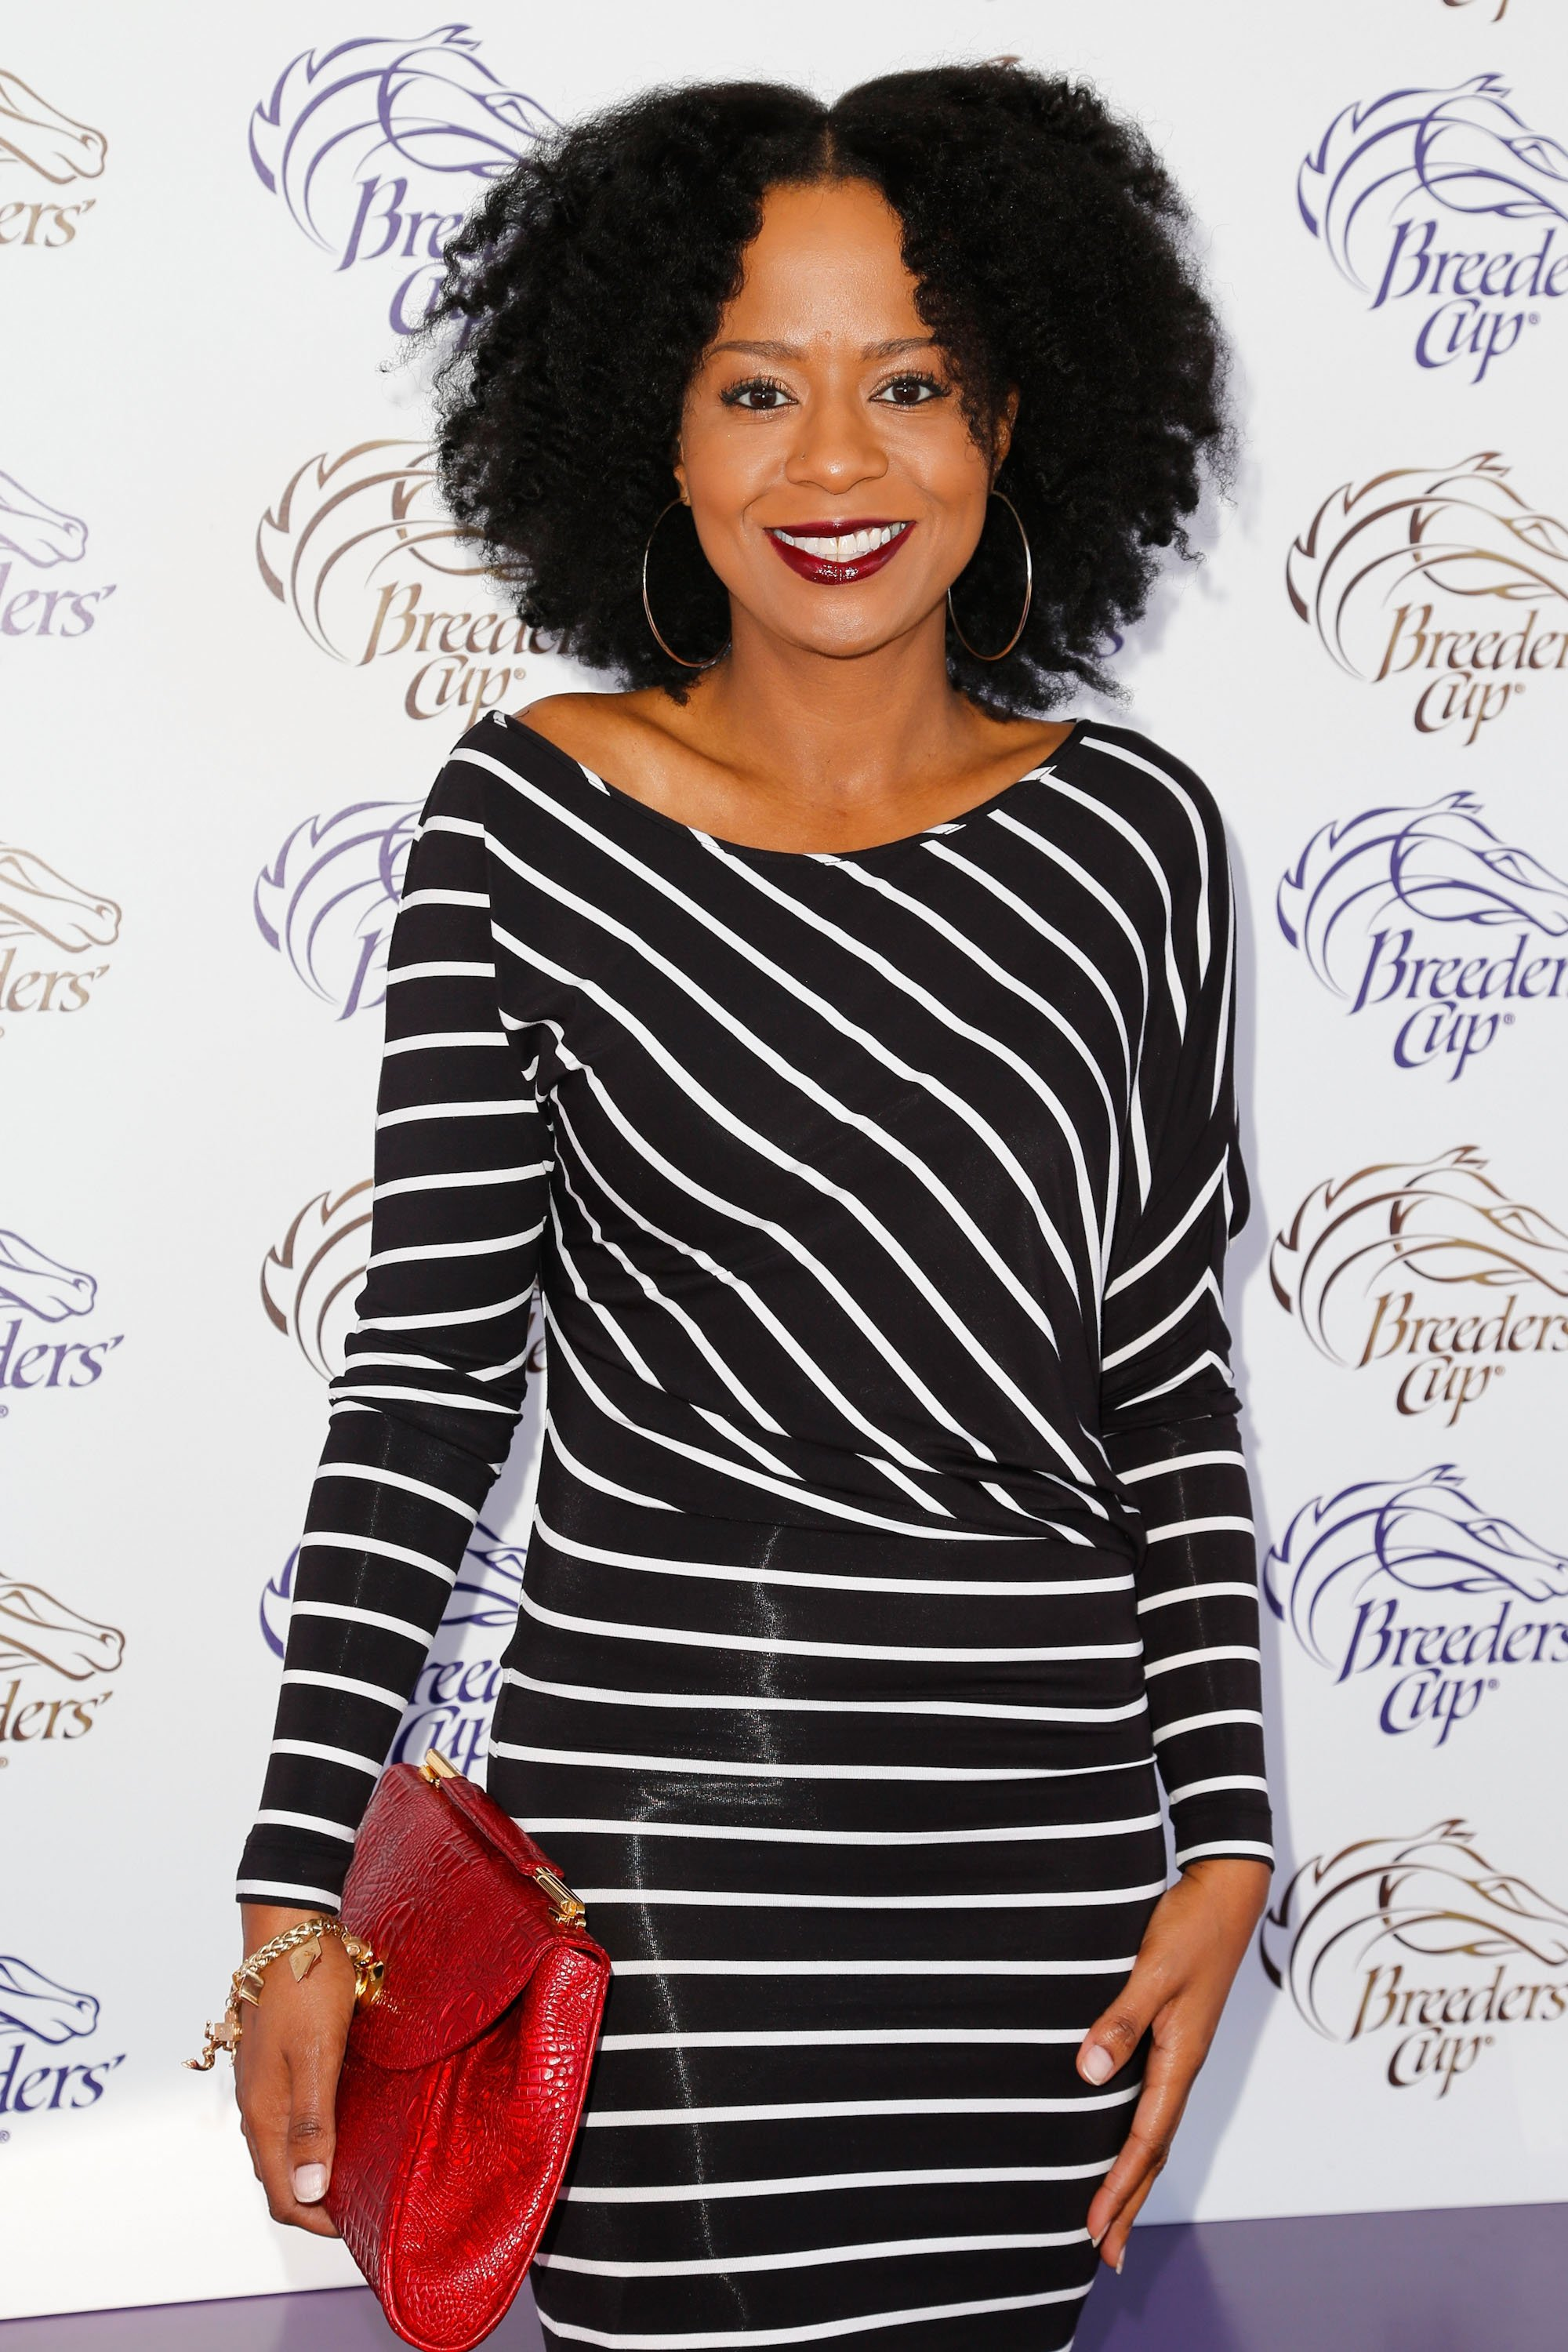 Tempestt Bledsoe at The Breeders' Cup World Championships on November 3, 2012 in Arcadia, California | Photo: Getty Images